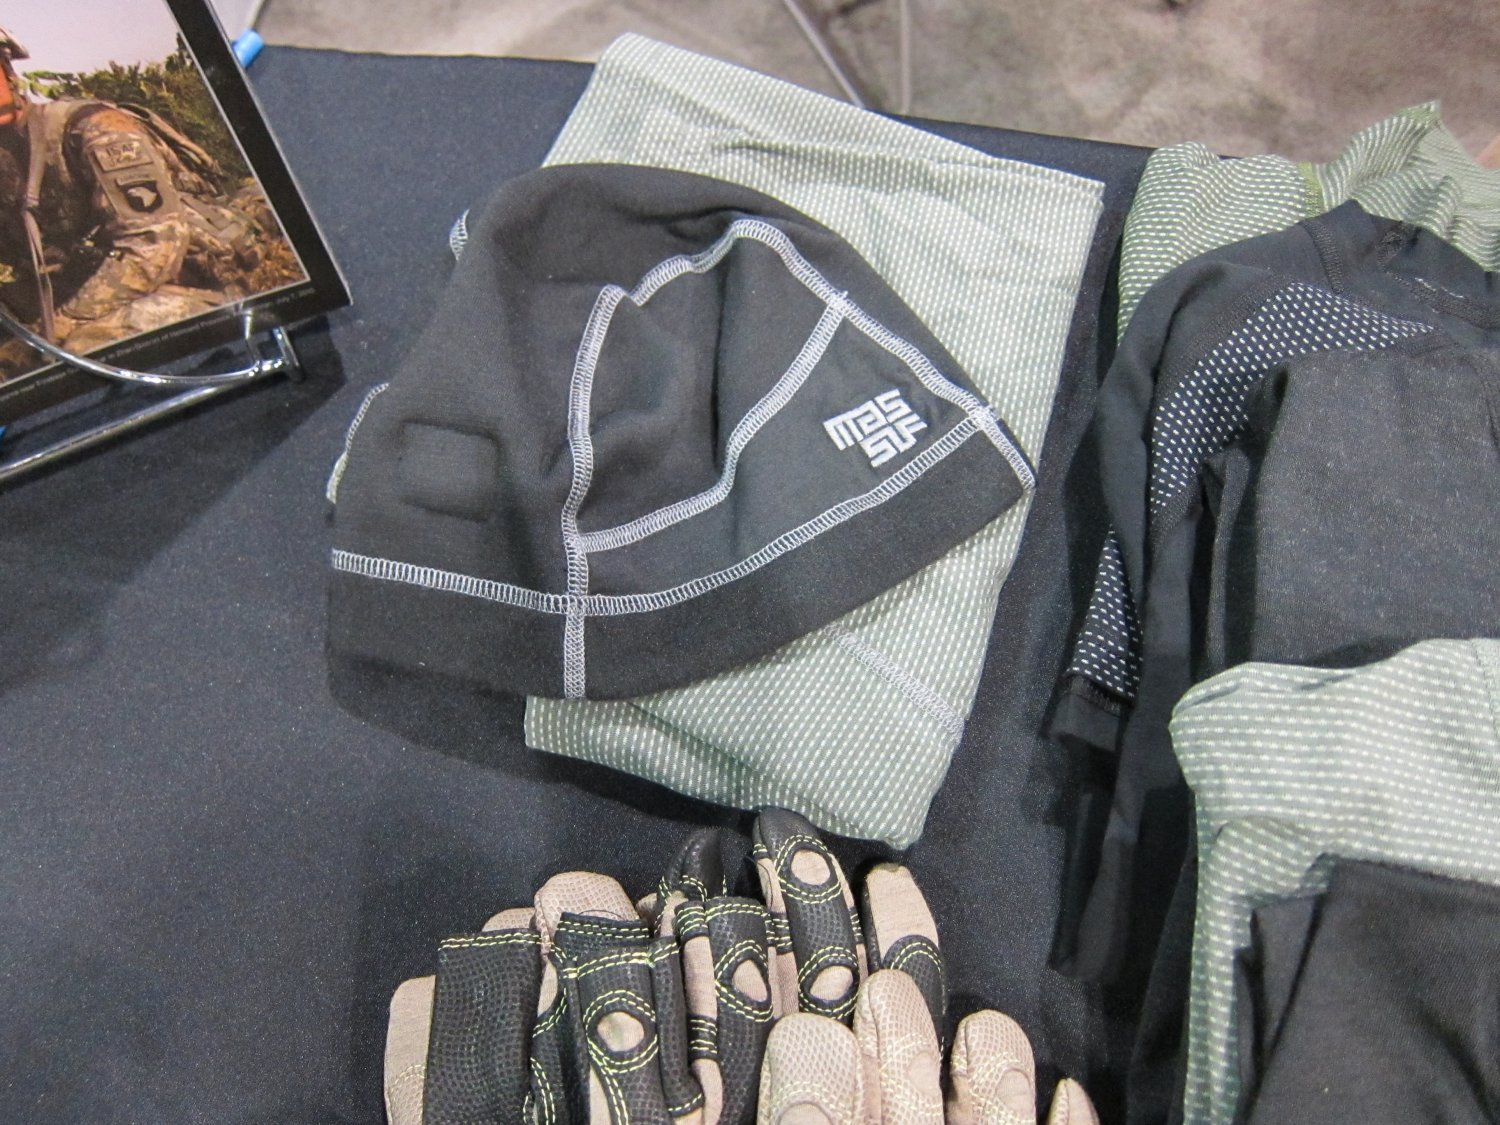 Massif Mountain Gear Flame Resistant FR Tactical Combat Clothing SOFIC 2011 3 <!  :en  >Massif Mountain Gear Flame Resistant (FR) Combat Clothing in Crye MultiCam Camouflage Pattern: High End Military Grade Tactical Jackets, Combat Shirts, and Tactical Pants for Military Special Operations Forces (SOF) and Civilian Tactical Shooters<!  :  >